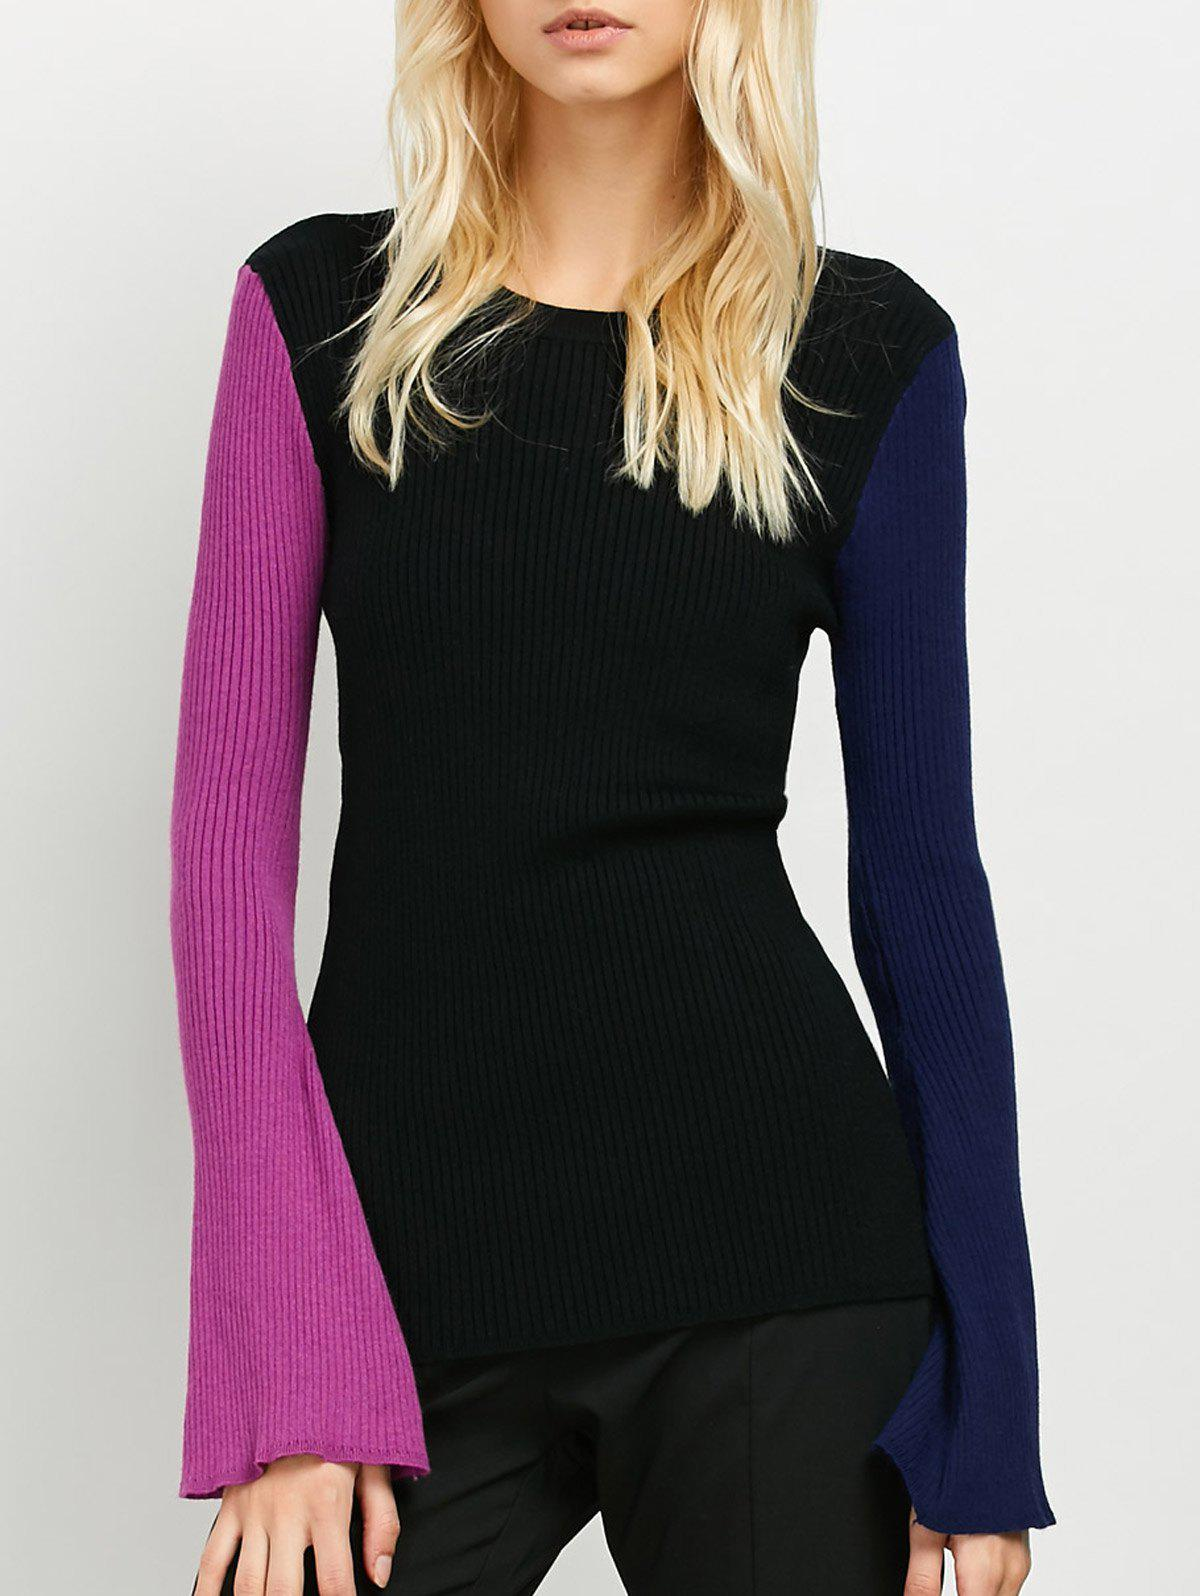 Ribbed Color Block Sweater ribbed color block sweater